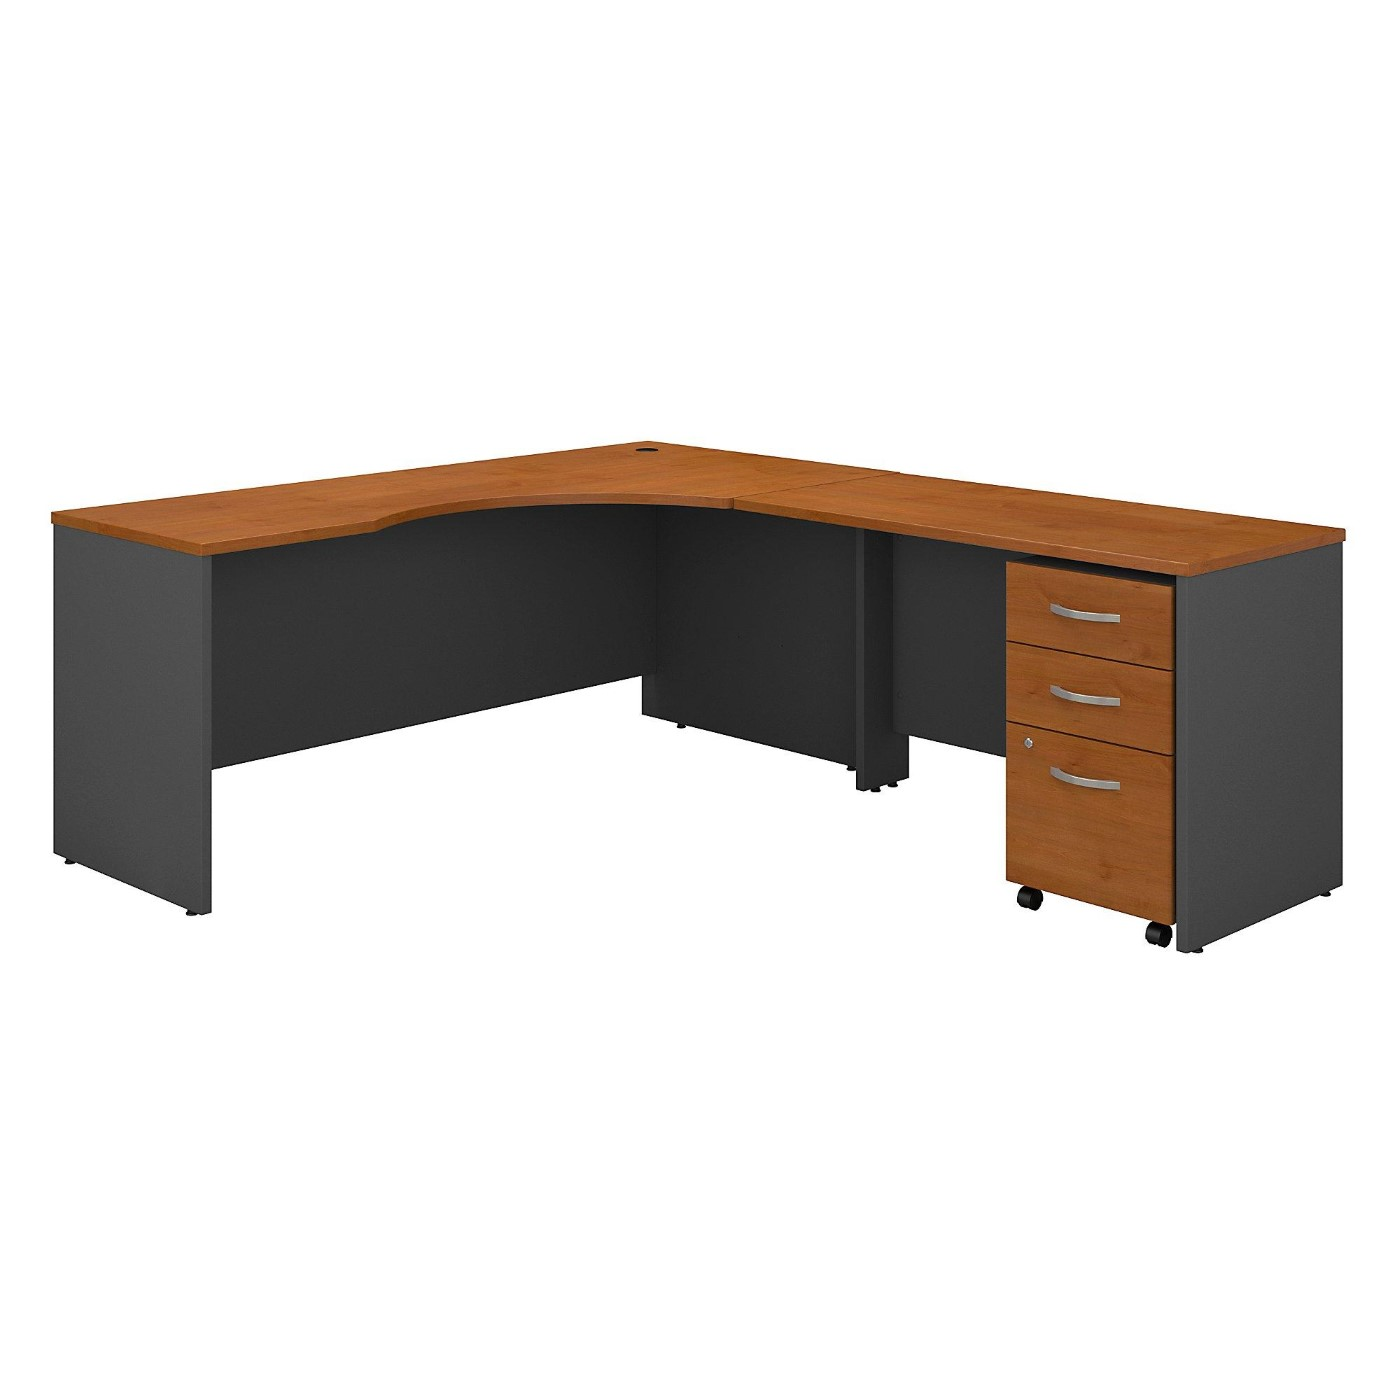 BUSH BUSINESS FURNITURE SERIES C 72W LEFT HANDED CORNER DESK WITH 48W RETURN AND MOBILE FILE CABINET. FREE SHIPPING</font></b></font></b>&#x1F384<font color=red><b>ERGONOMICHOME HOLIDAY SALE - ENDS DEC. 17, 2019</b></font>&#x1F384